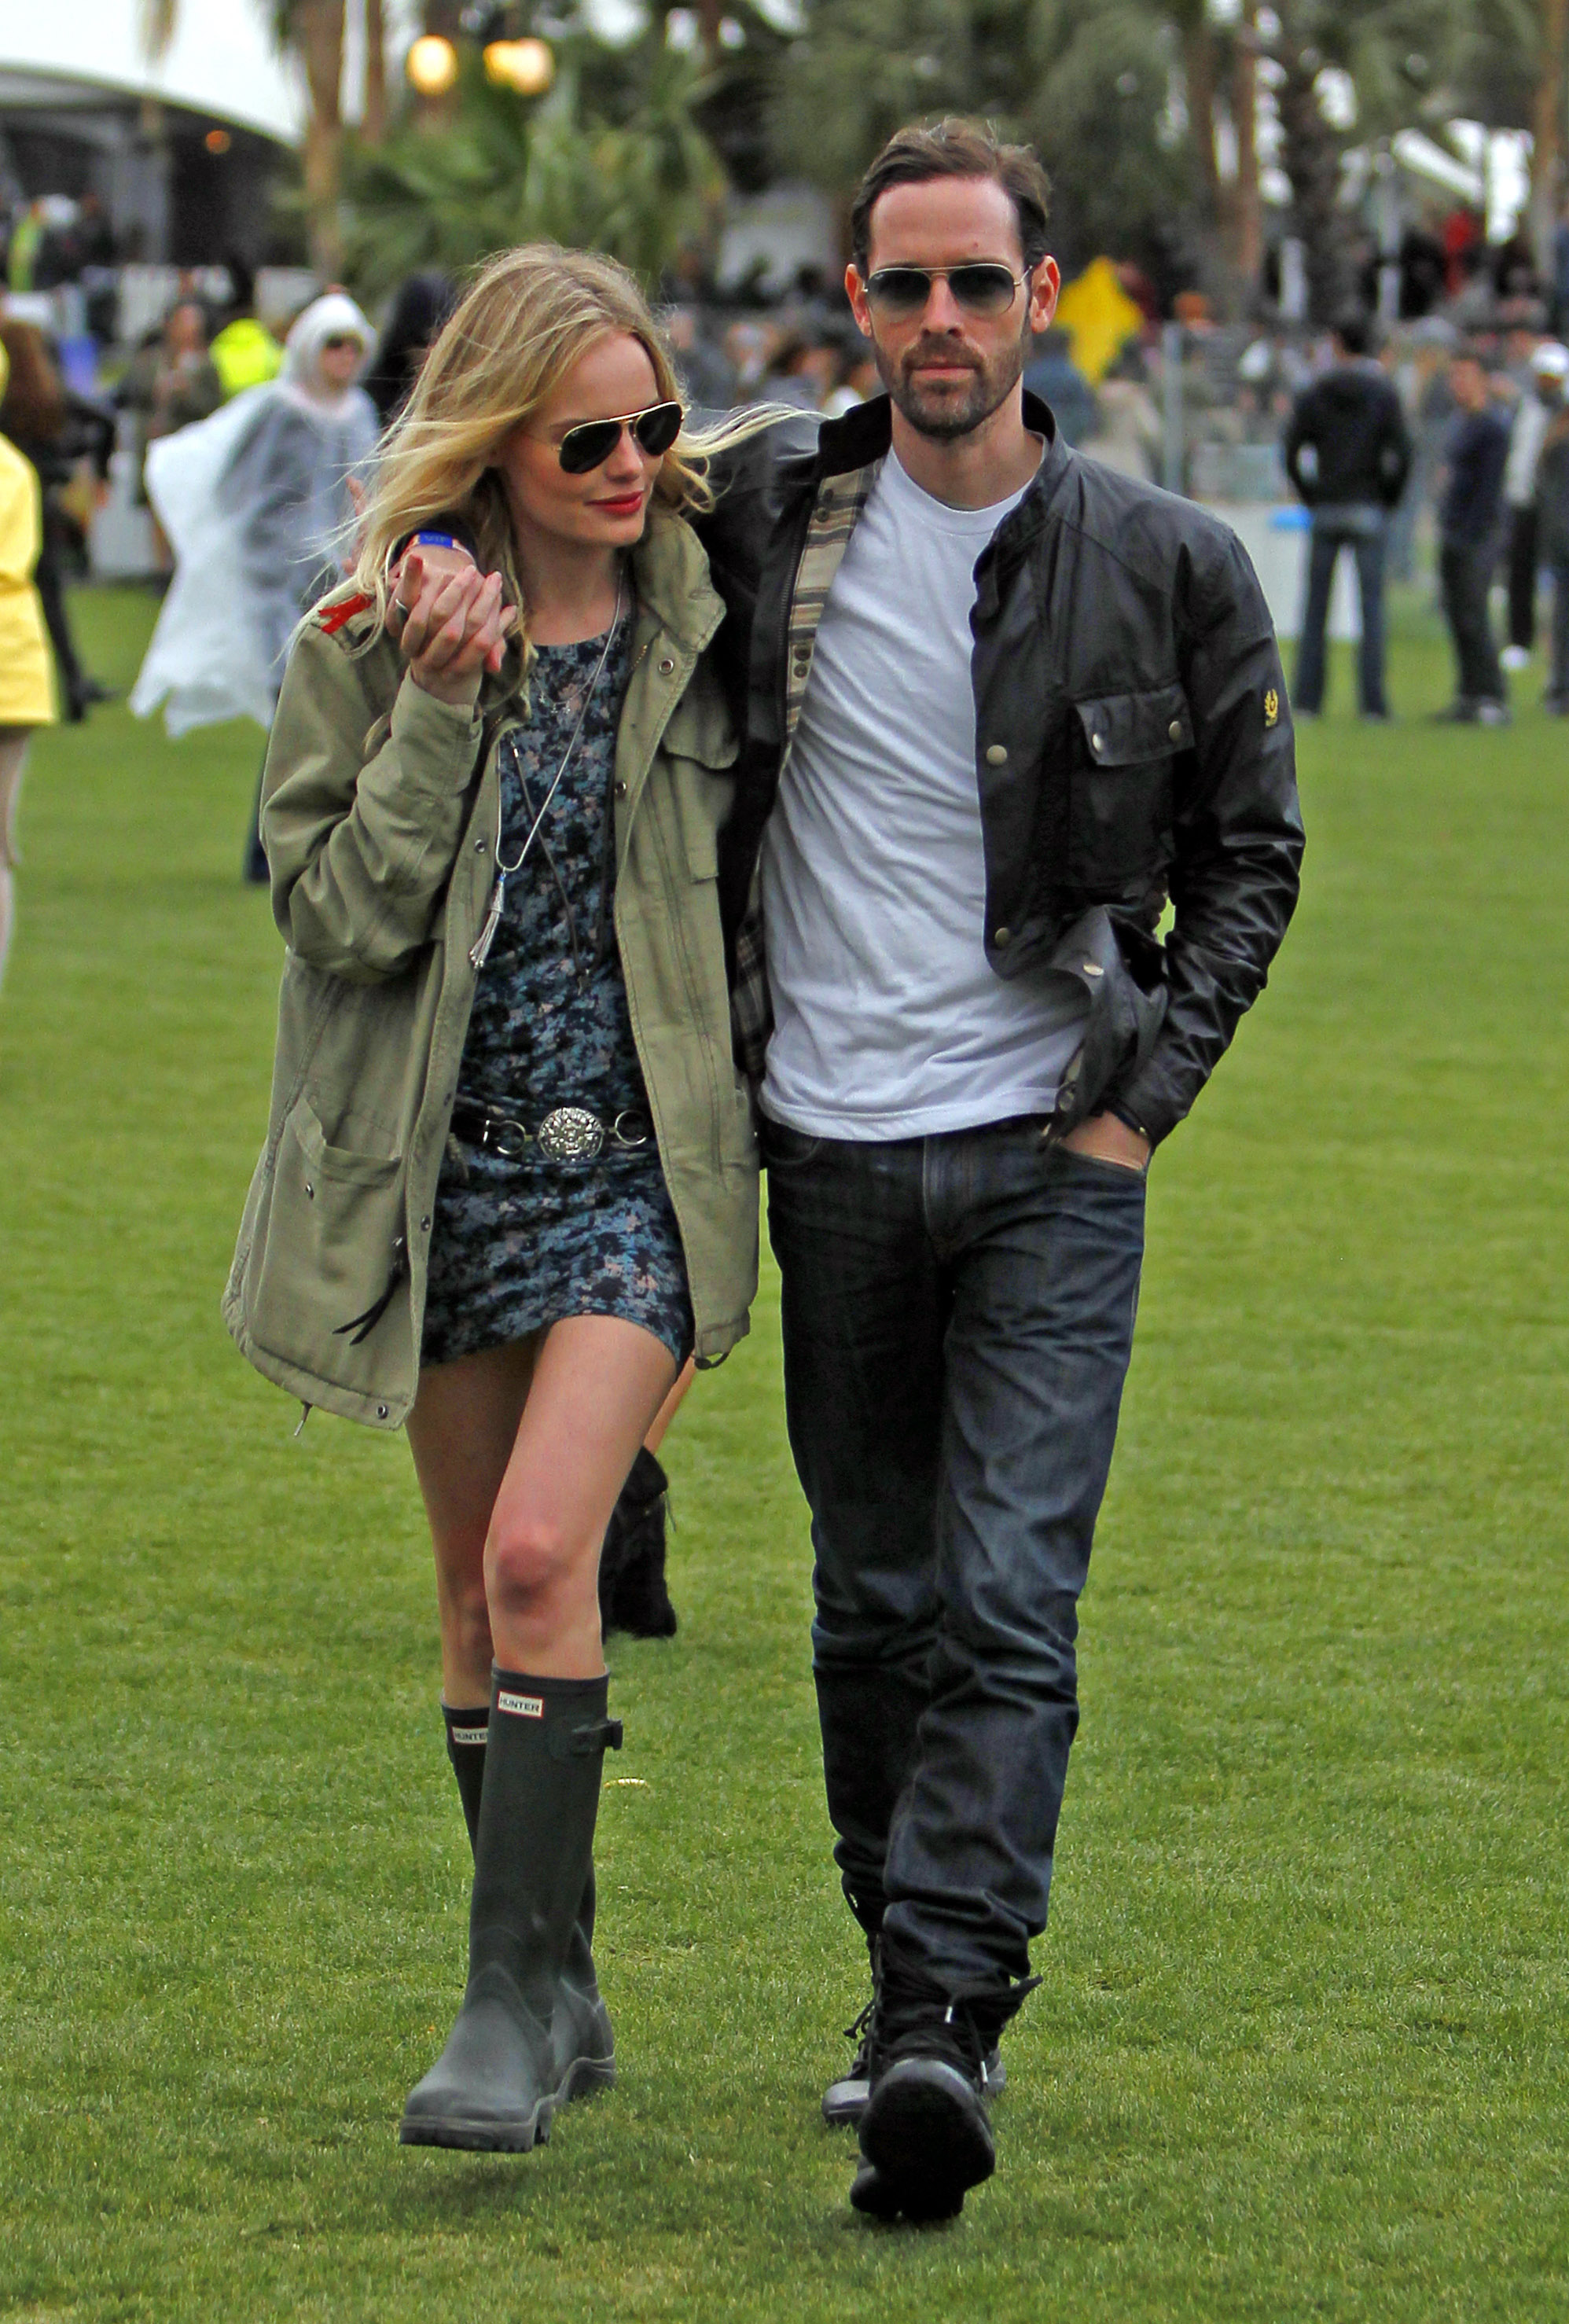 Kate Bosworth and Michael Polish showed PDA on the Coachella grounds Friday, when they checked out a performance by Arctic Monkeys. We spotted them holding hands as they walked through the VIP section in the a